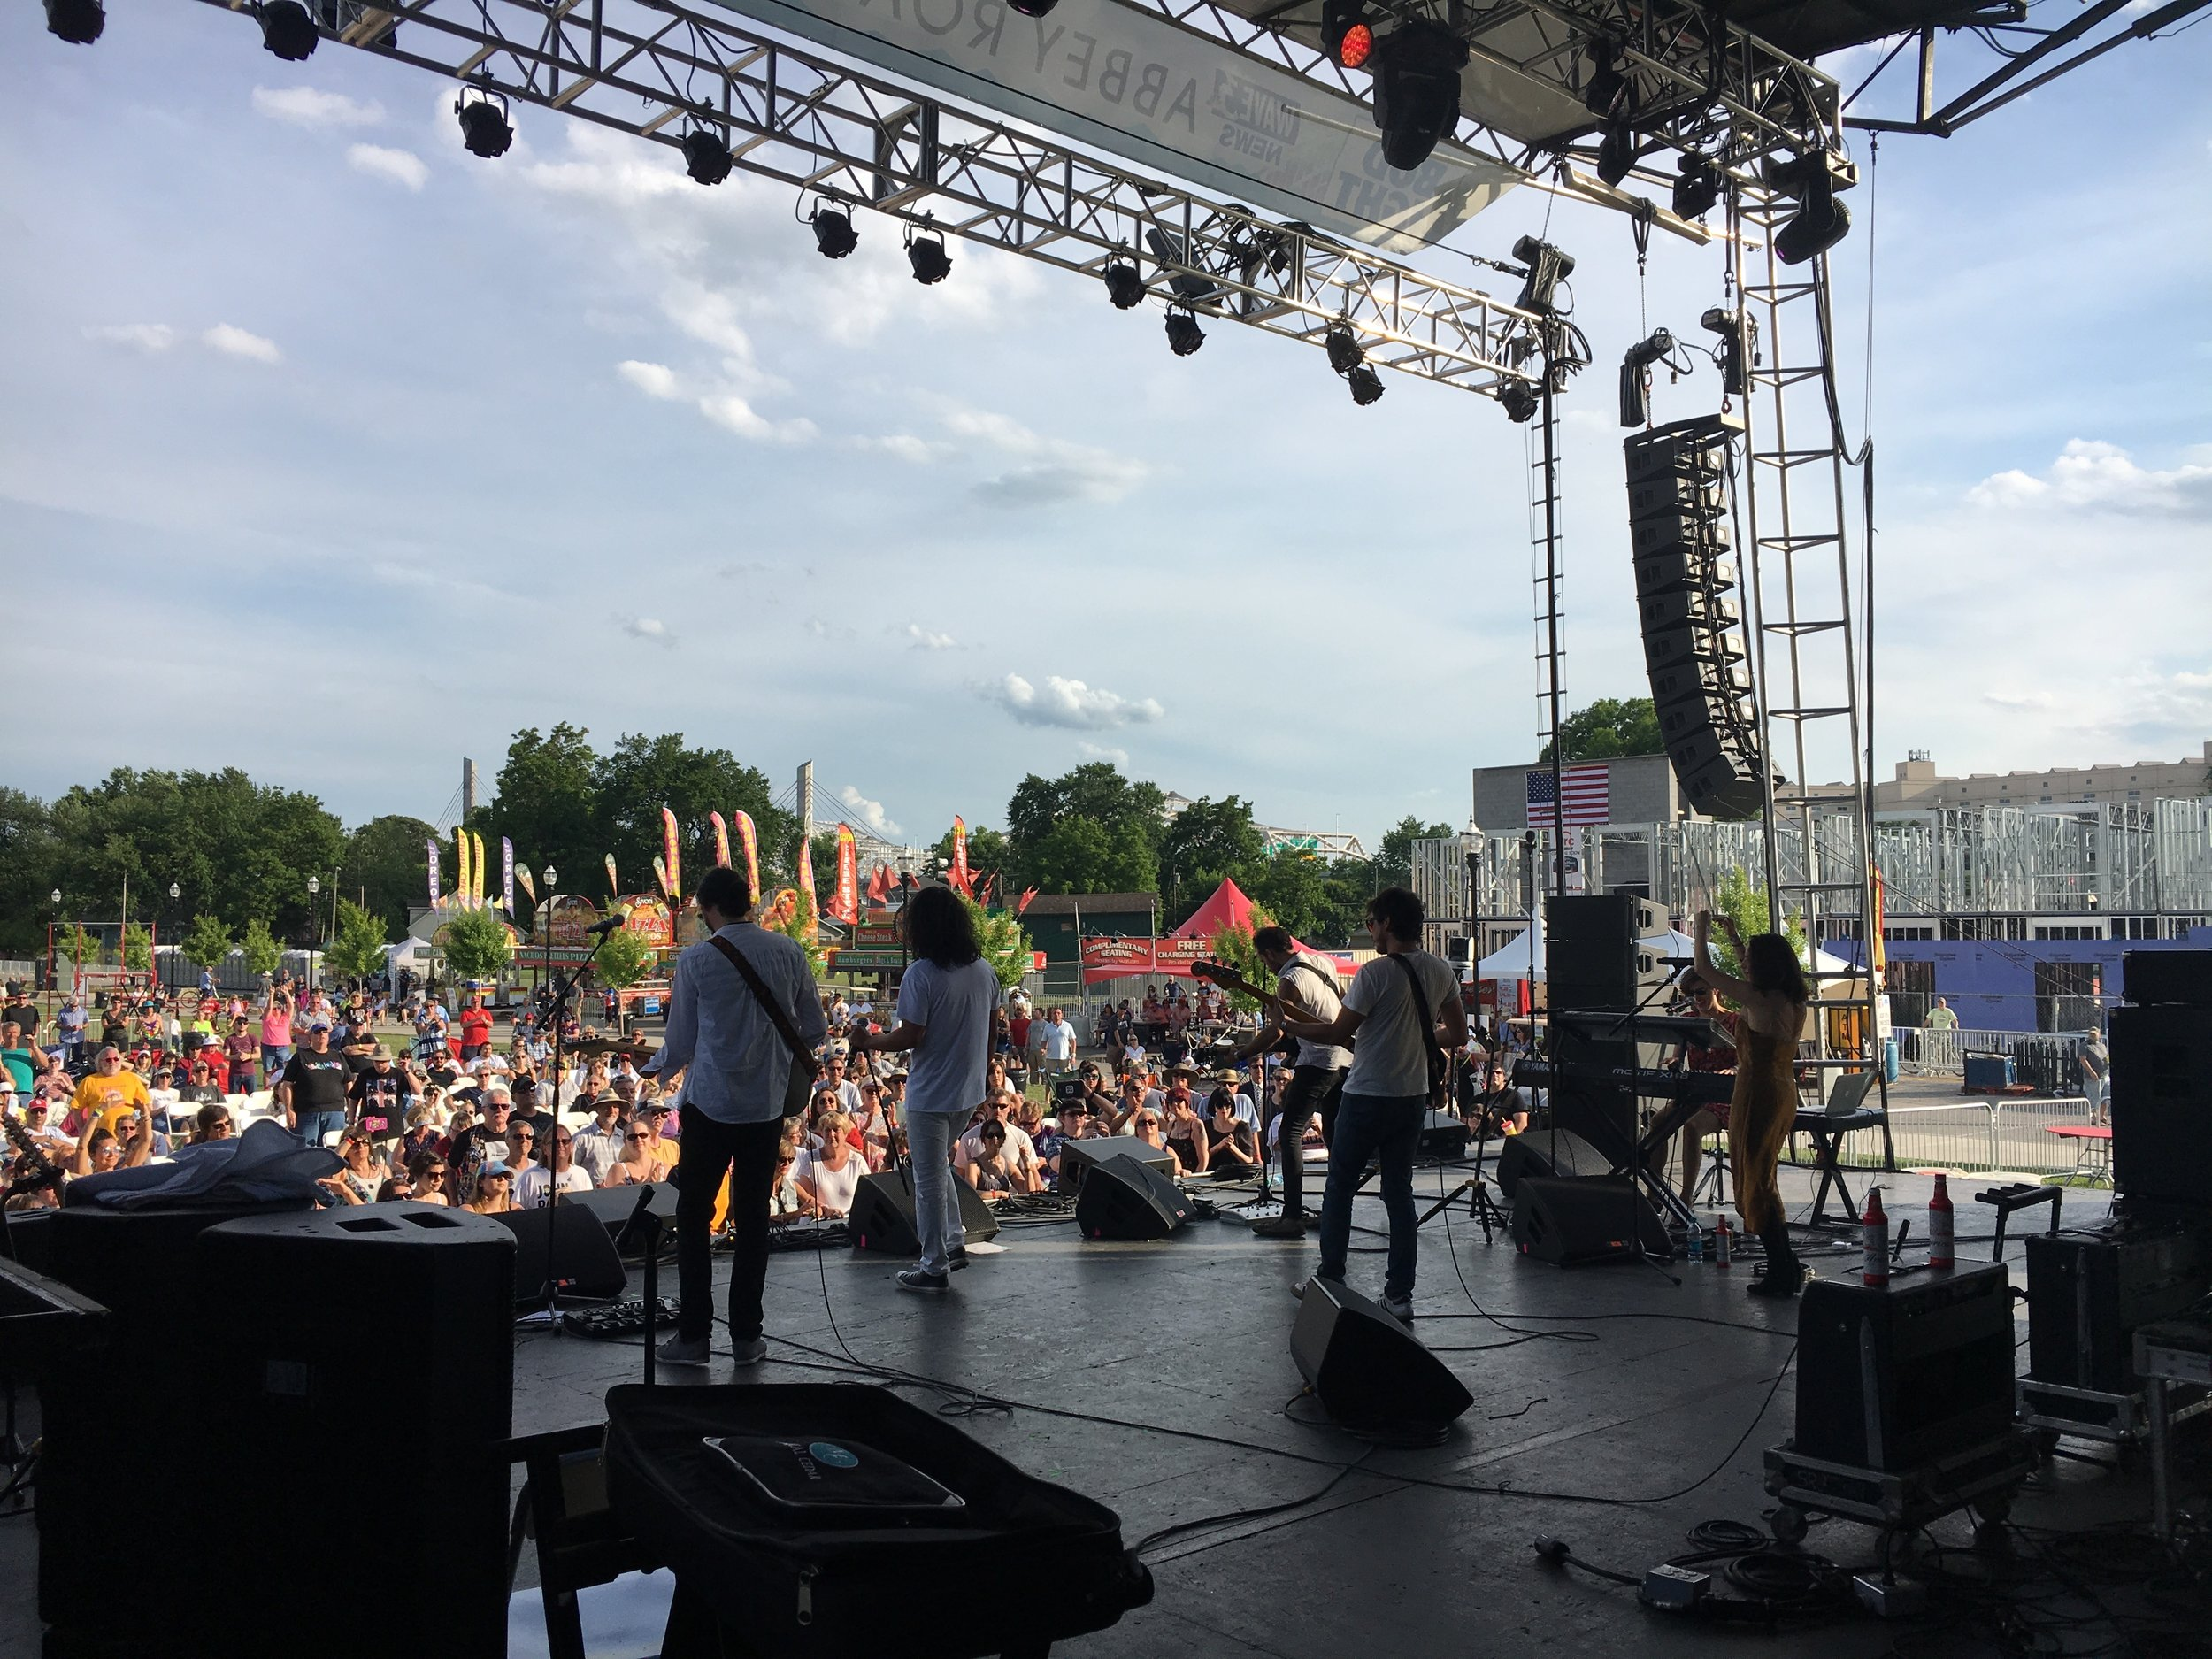 Abbey Road on the River Announces 2018 Lineup - November 16, 2017 - Wave 3 News